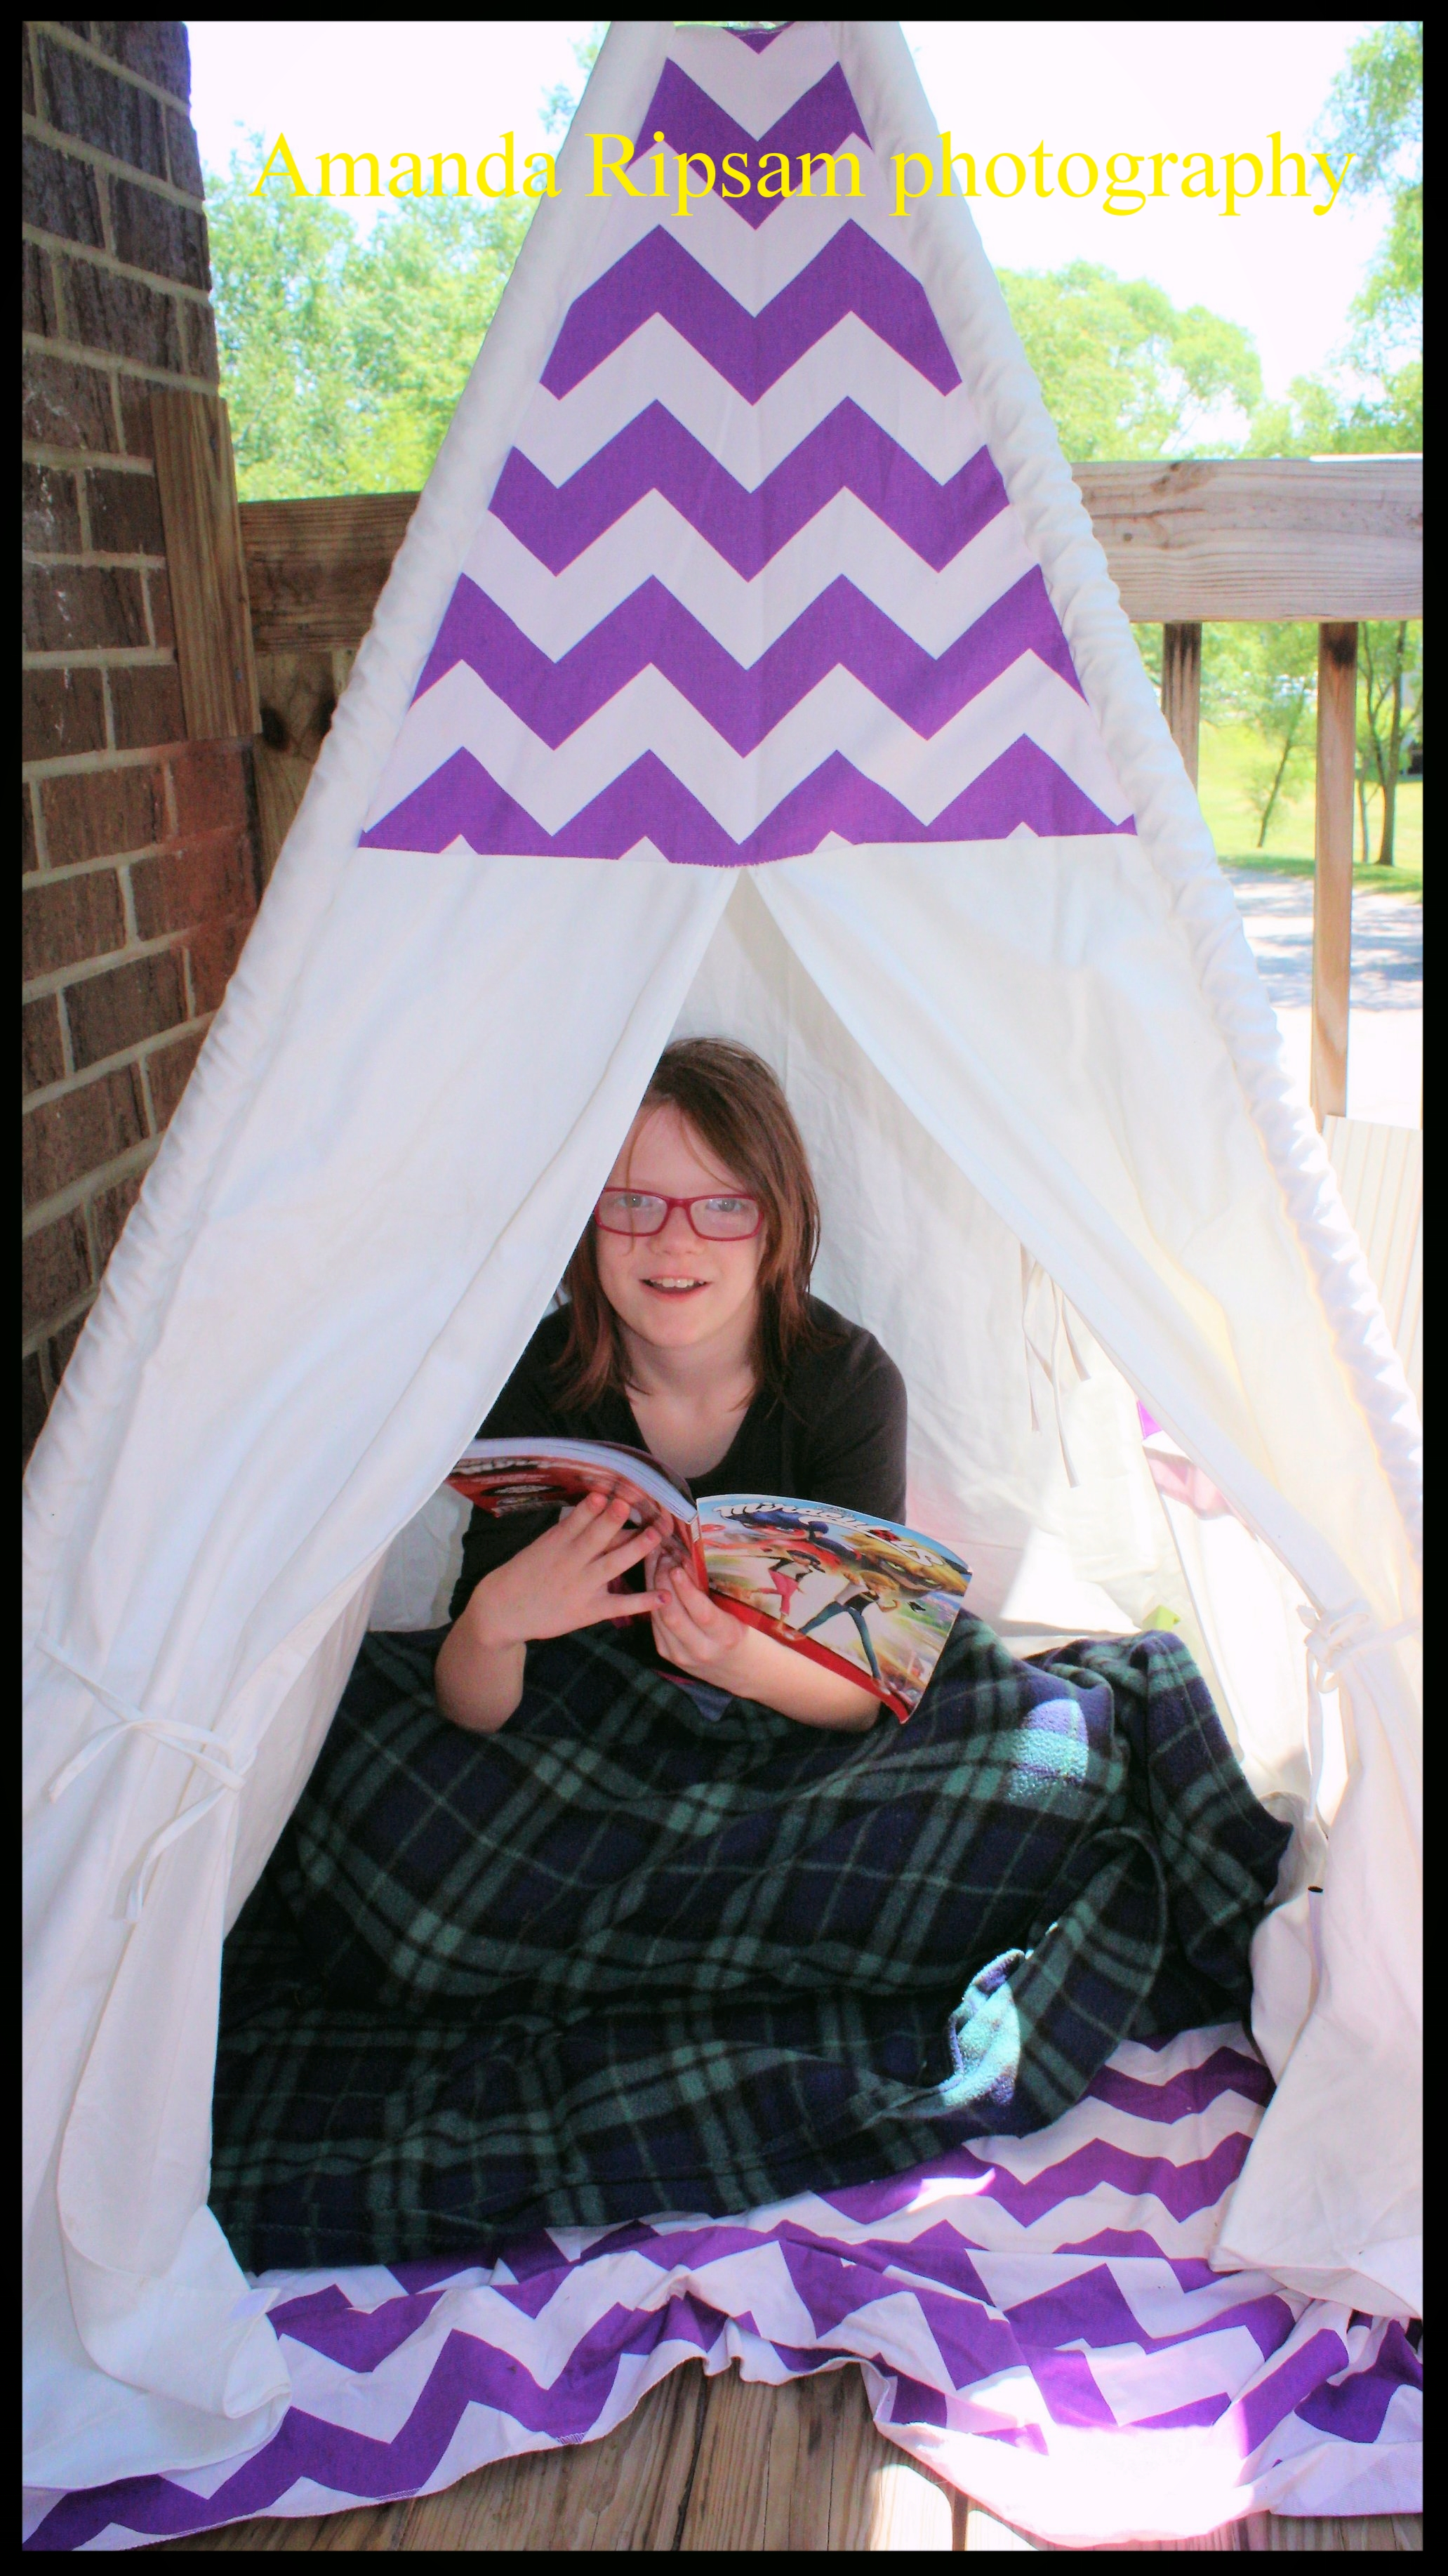 Bella enjoying her new teepee encourages summer reading. Even if it is comic books